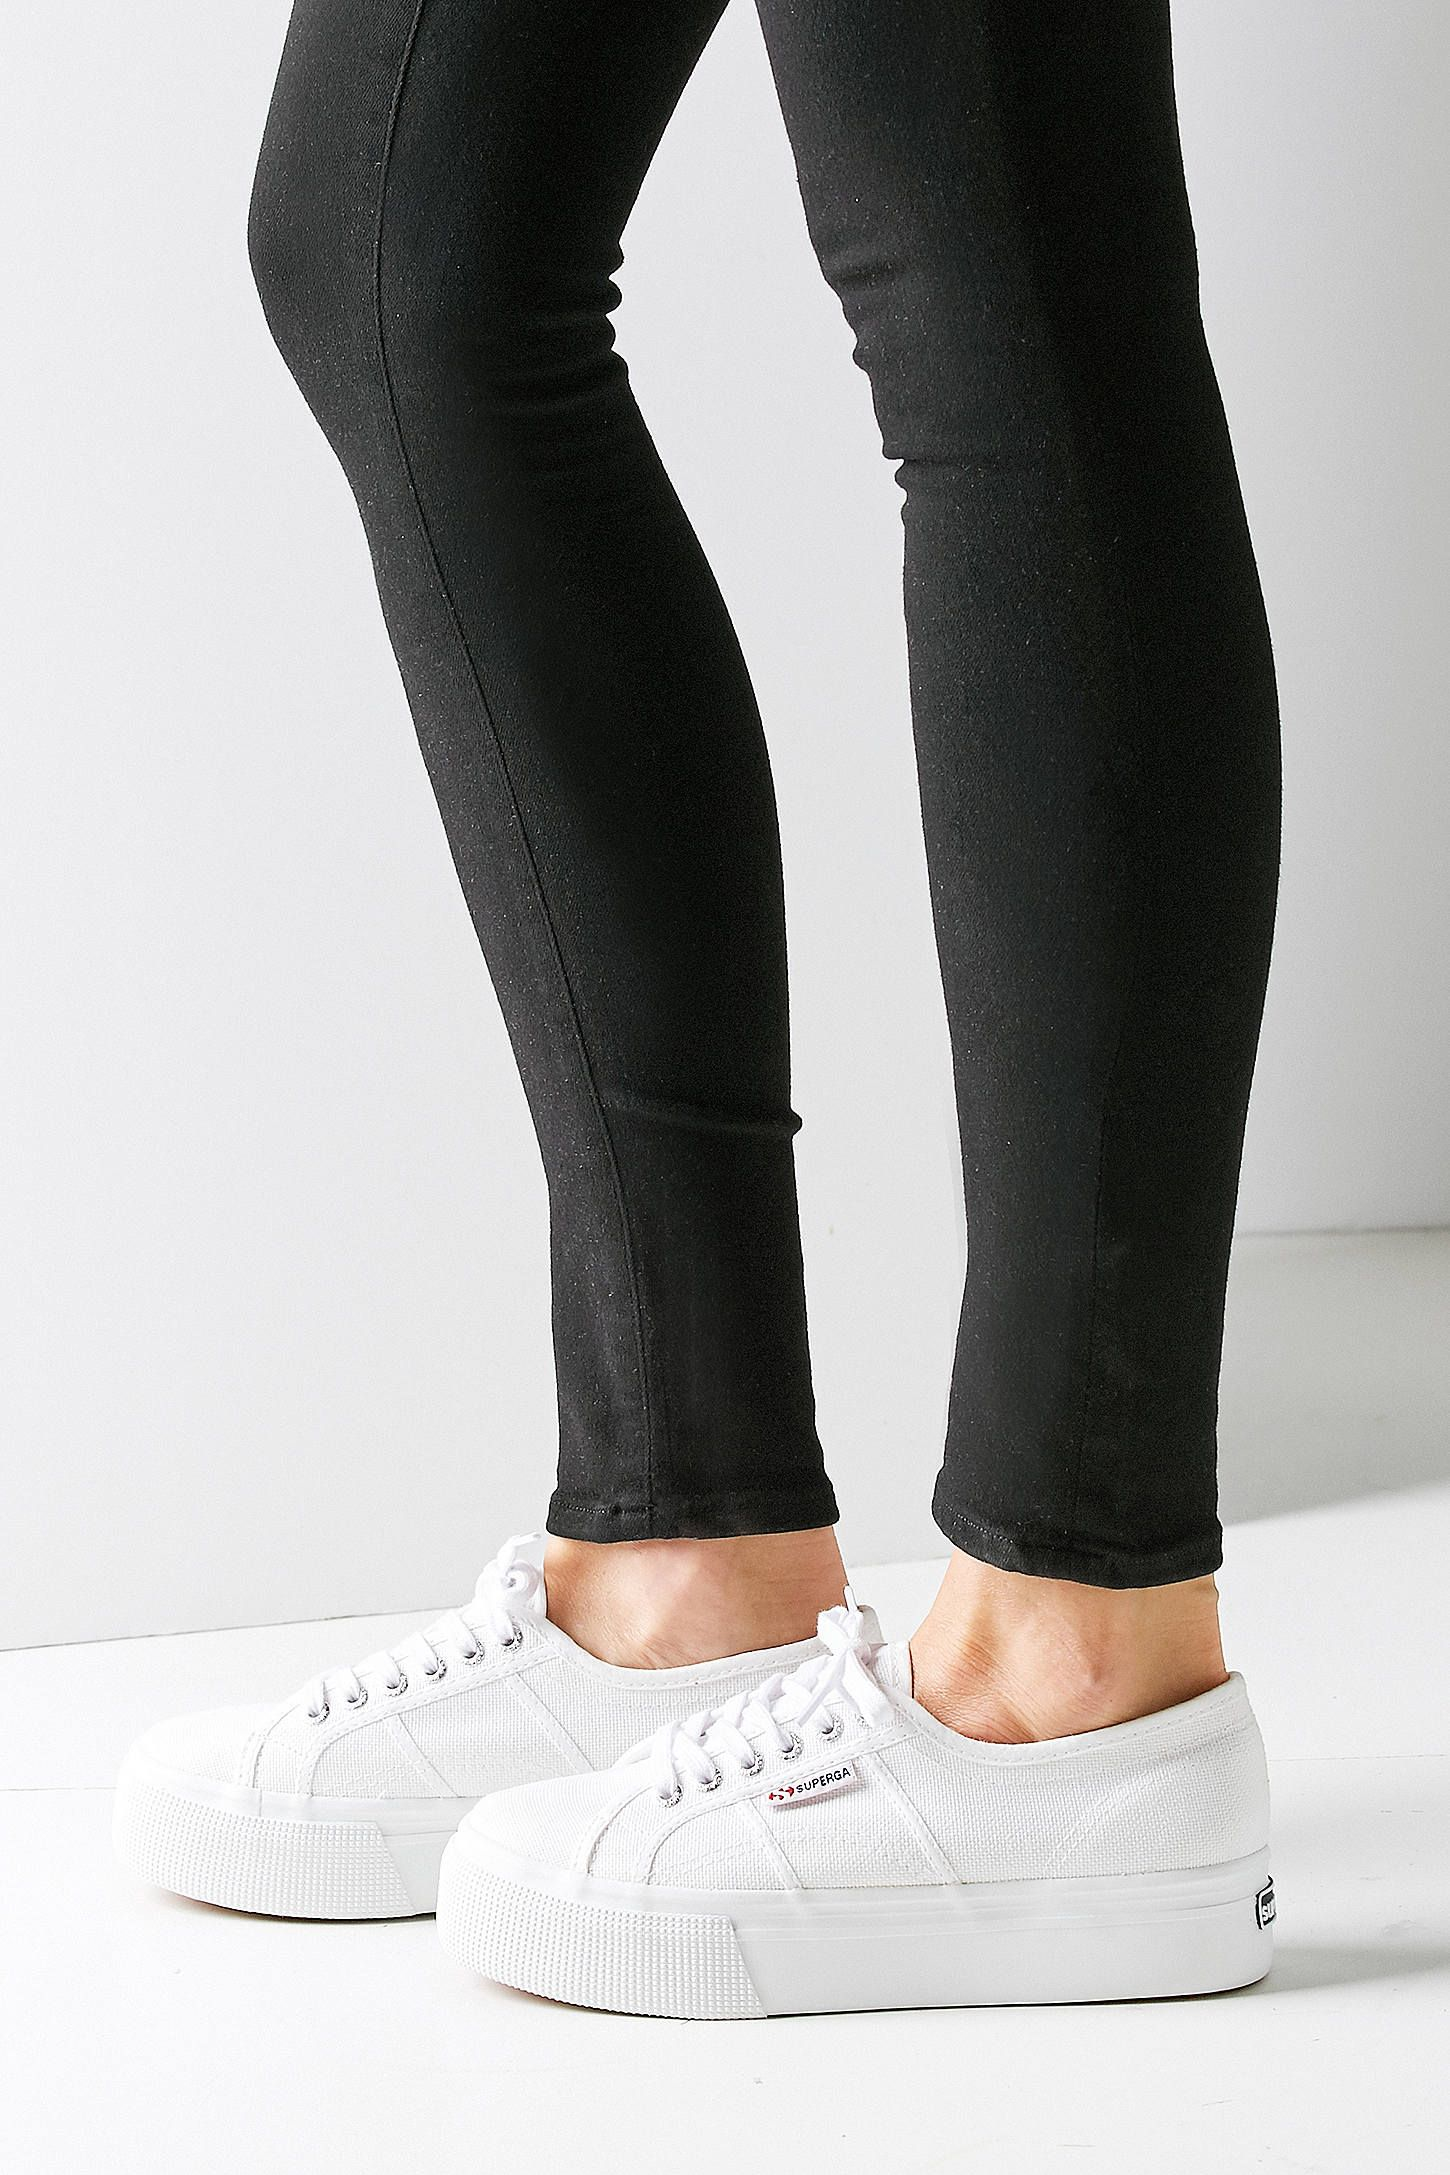 d85eff504a09 Shop Superga 2790 Linea Platform Sneaker at Urban Outfitters today. We  carry all the latest styles